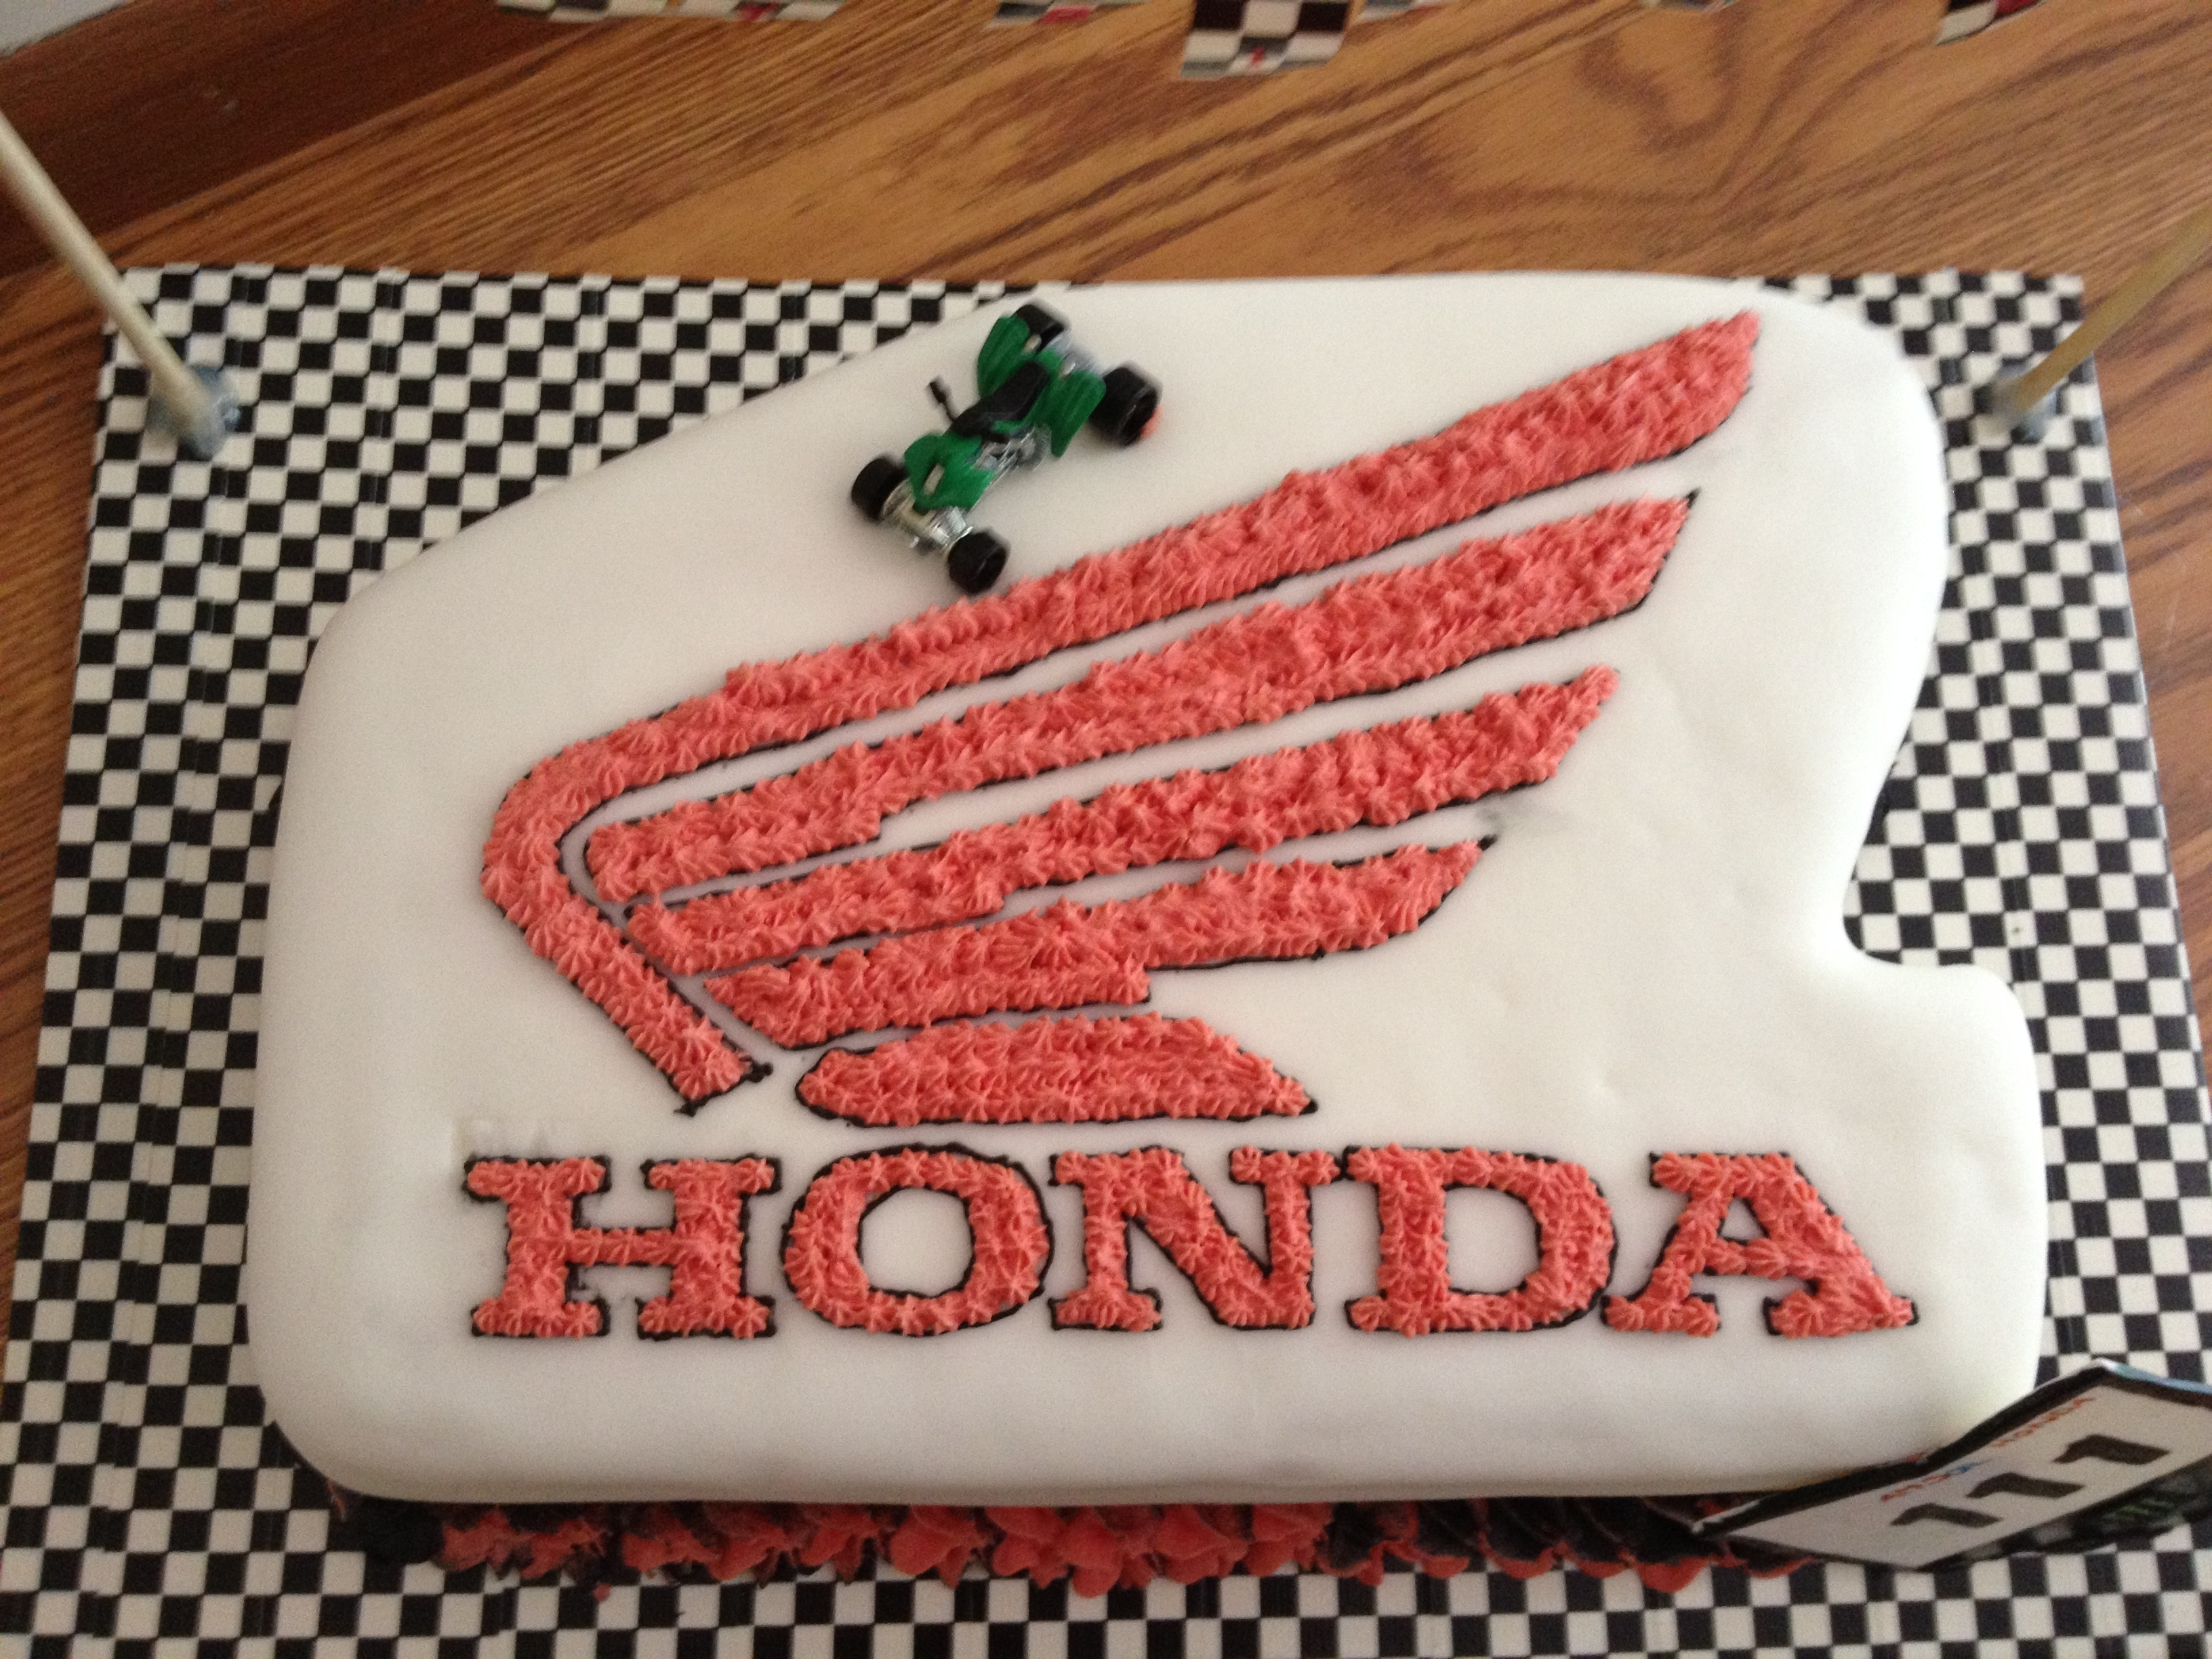 Friend of mine wanted a racing cake - He races a Honda four wheeler so I coudn't think of anything more perfect